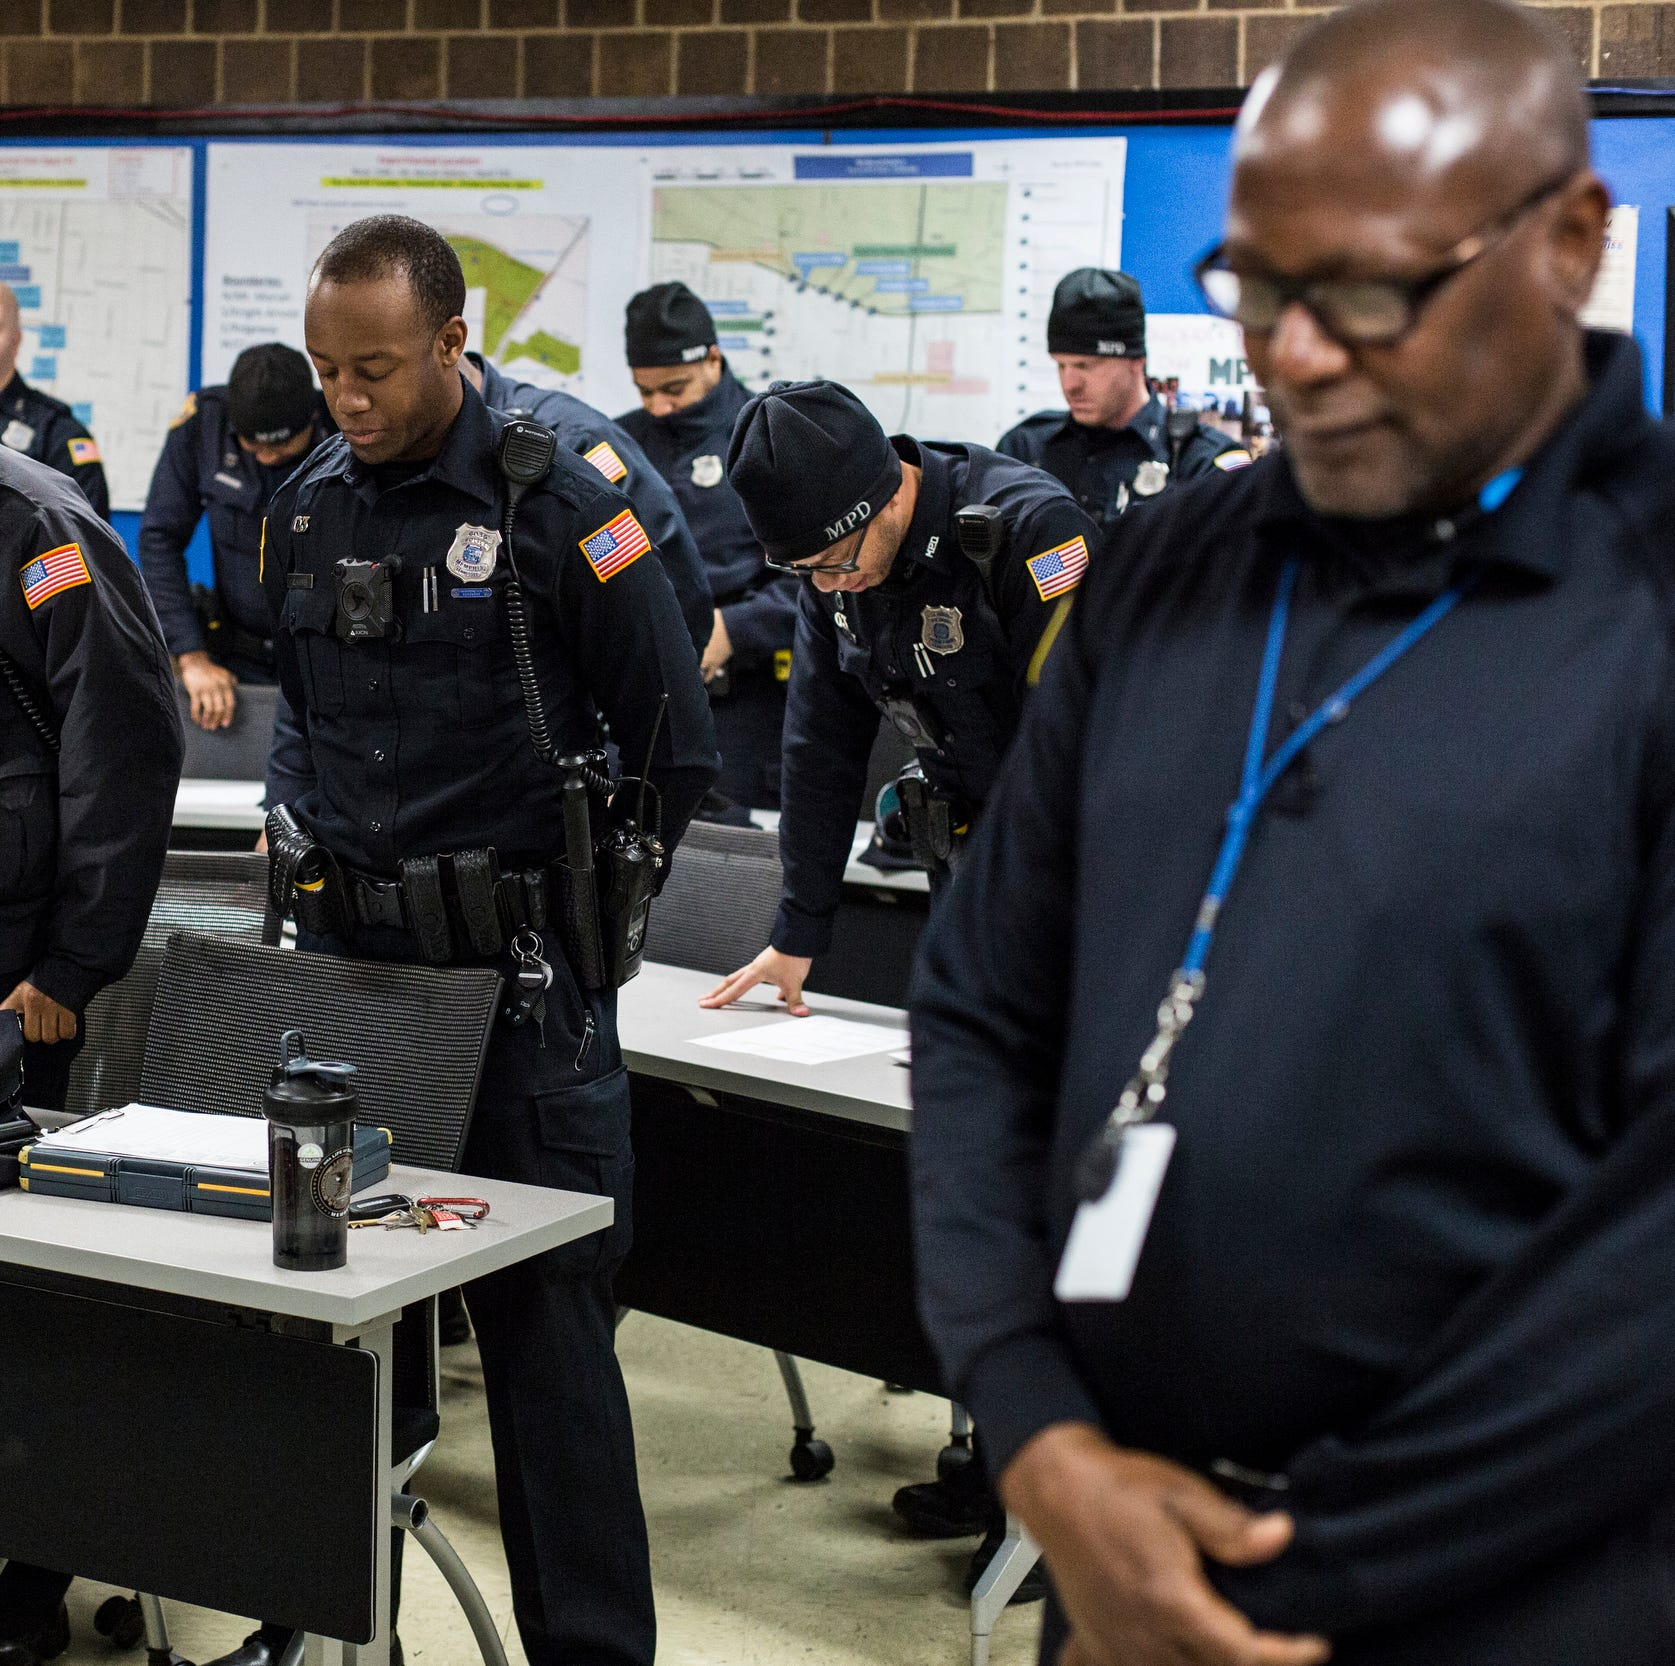 As police forces shrink, cities like Memphis look at new ways to fund law enforcement